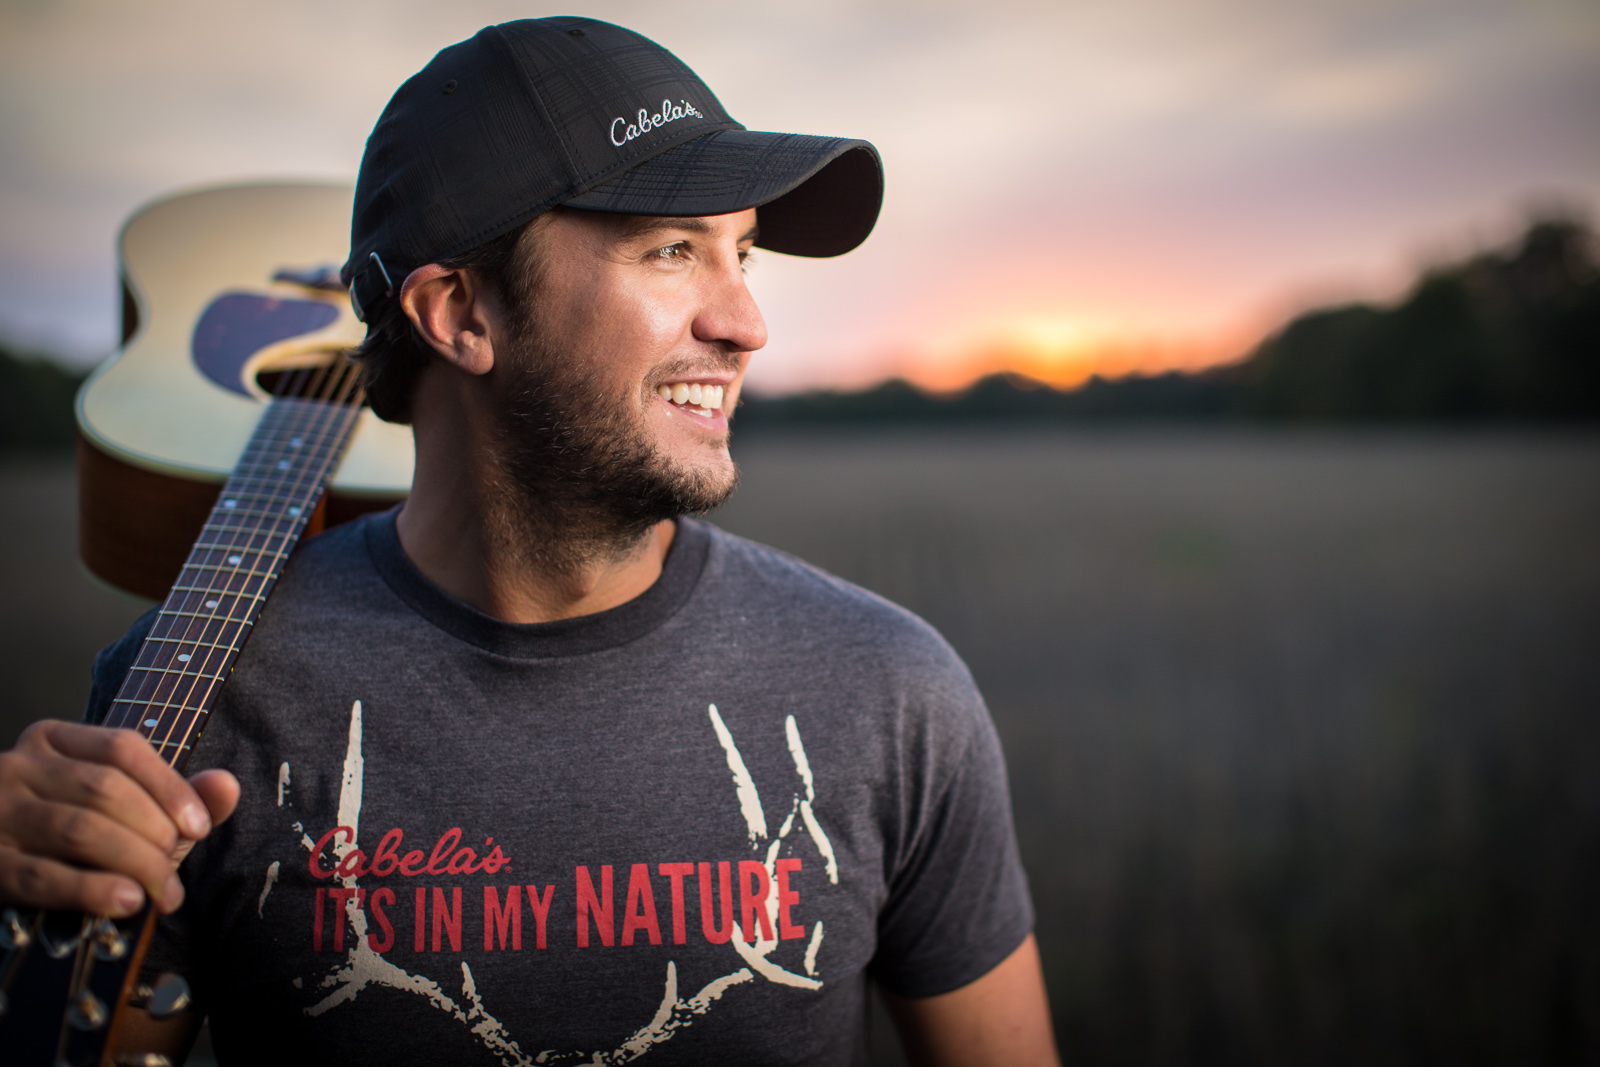 luke bryan wallpaper,guitarist,musician,guitar,music,facial hair